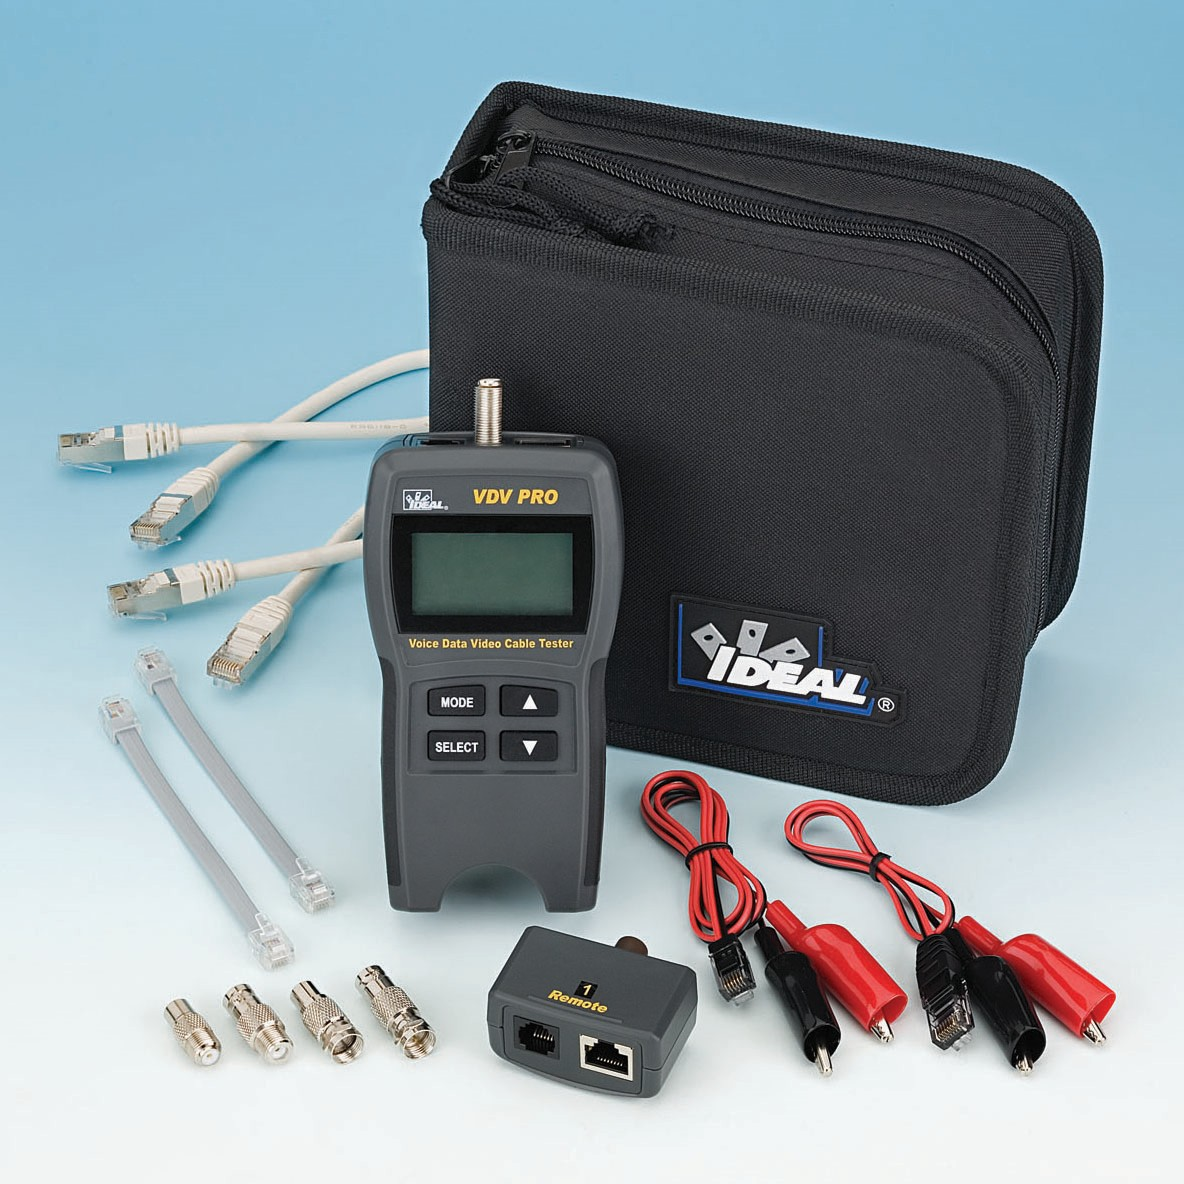 VDV PRO Cable Tester Kits for installers, contractors and ...